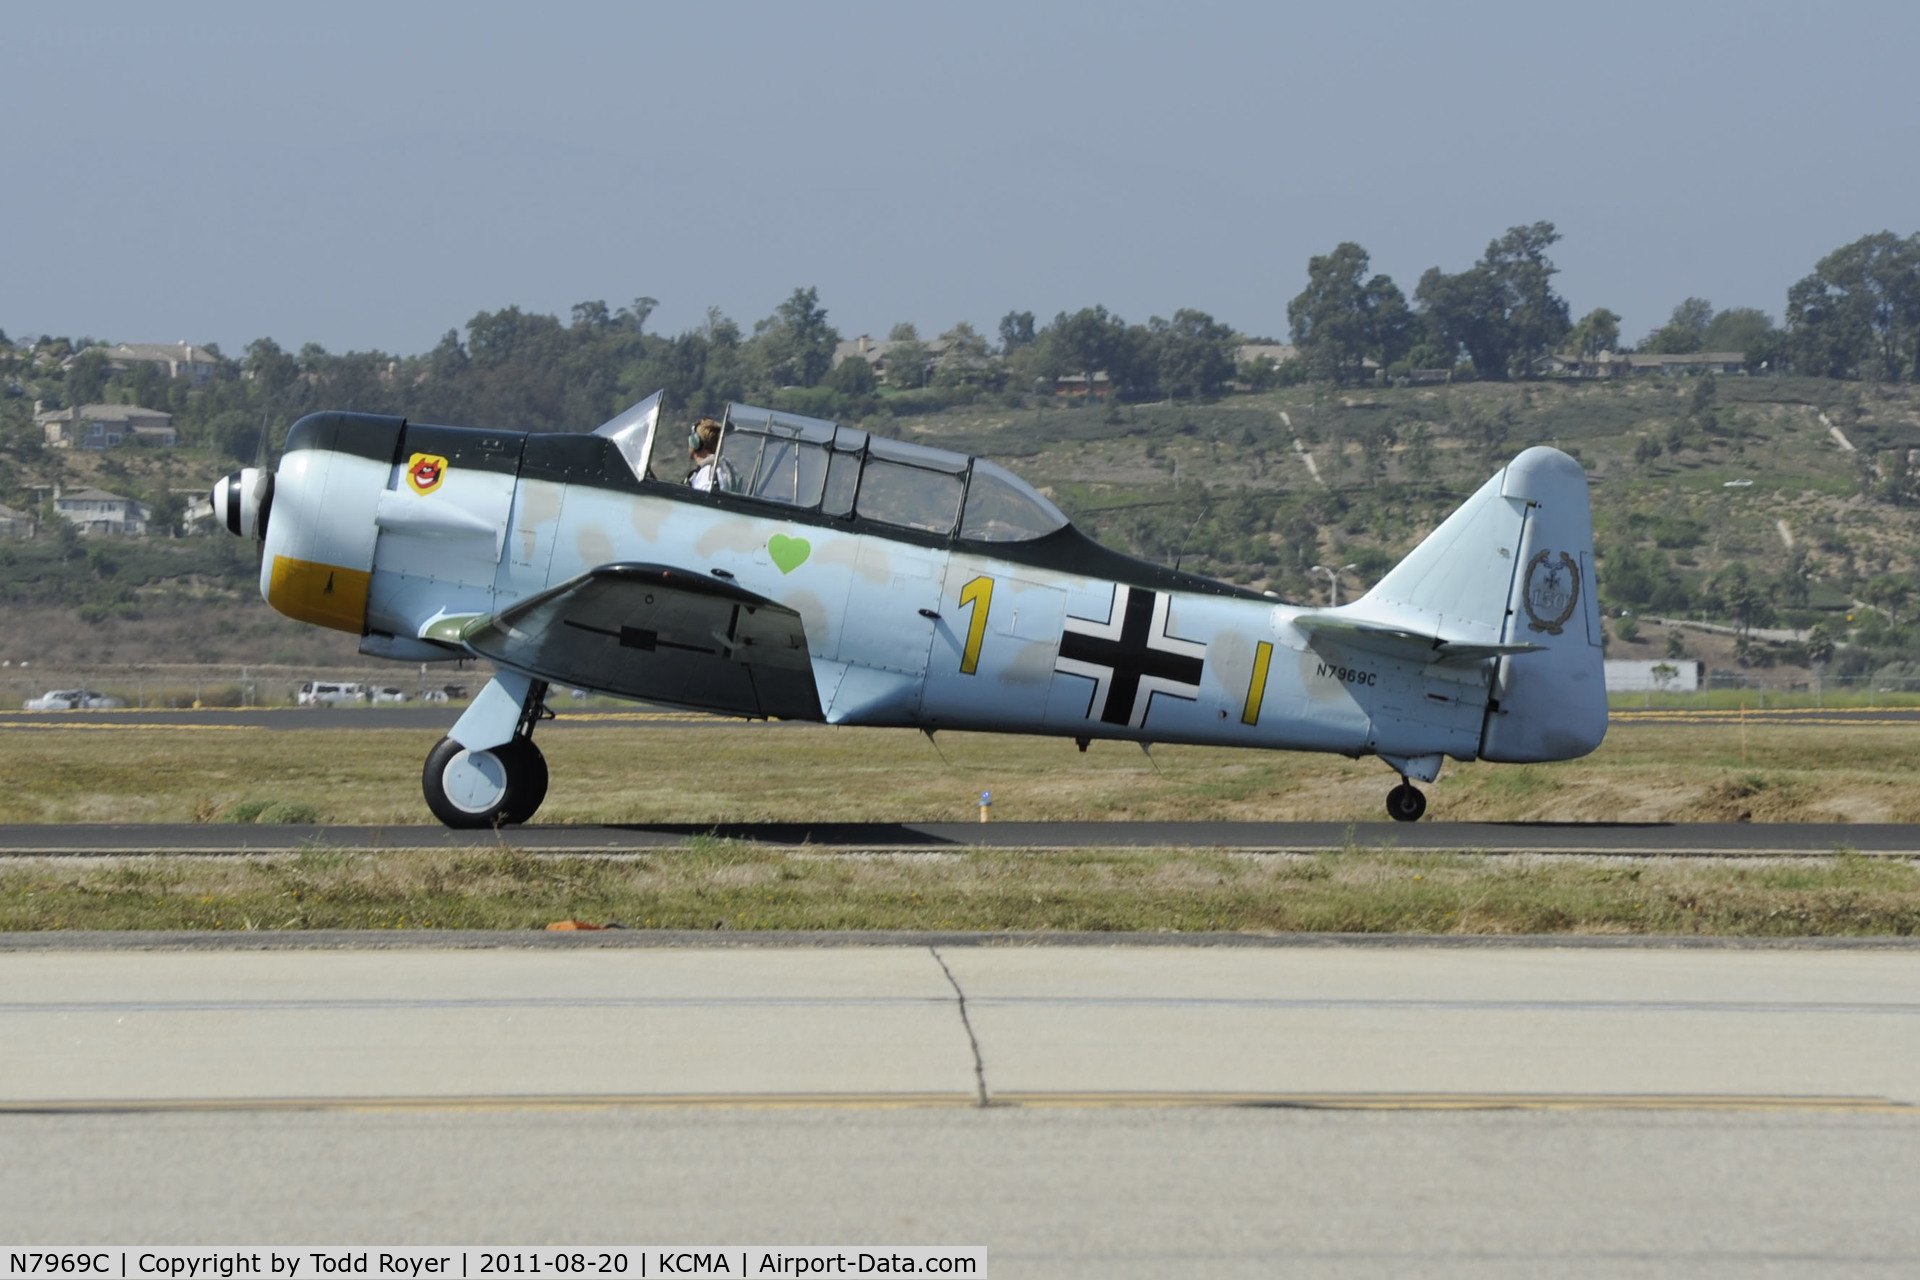 N7969C, North American SNJ-5 C/N 43974, Taxi for departure at Camarillo